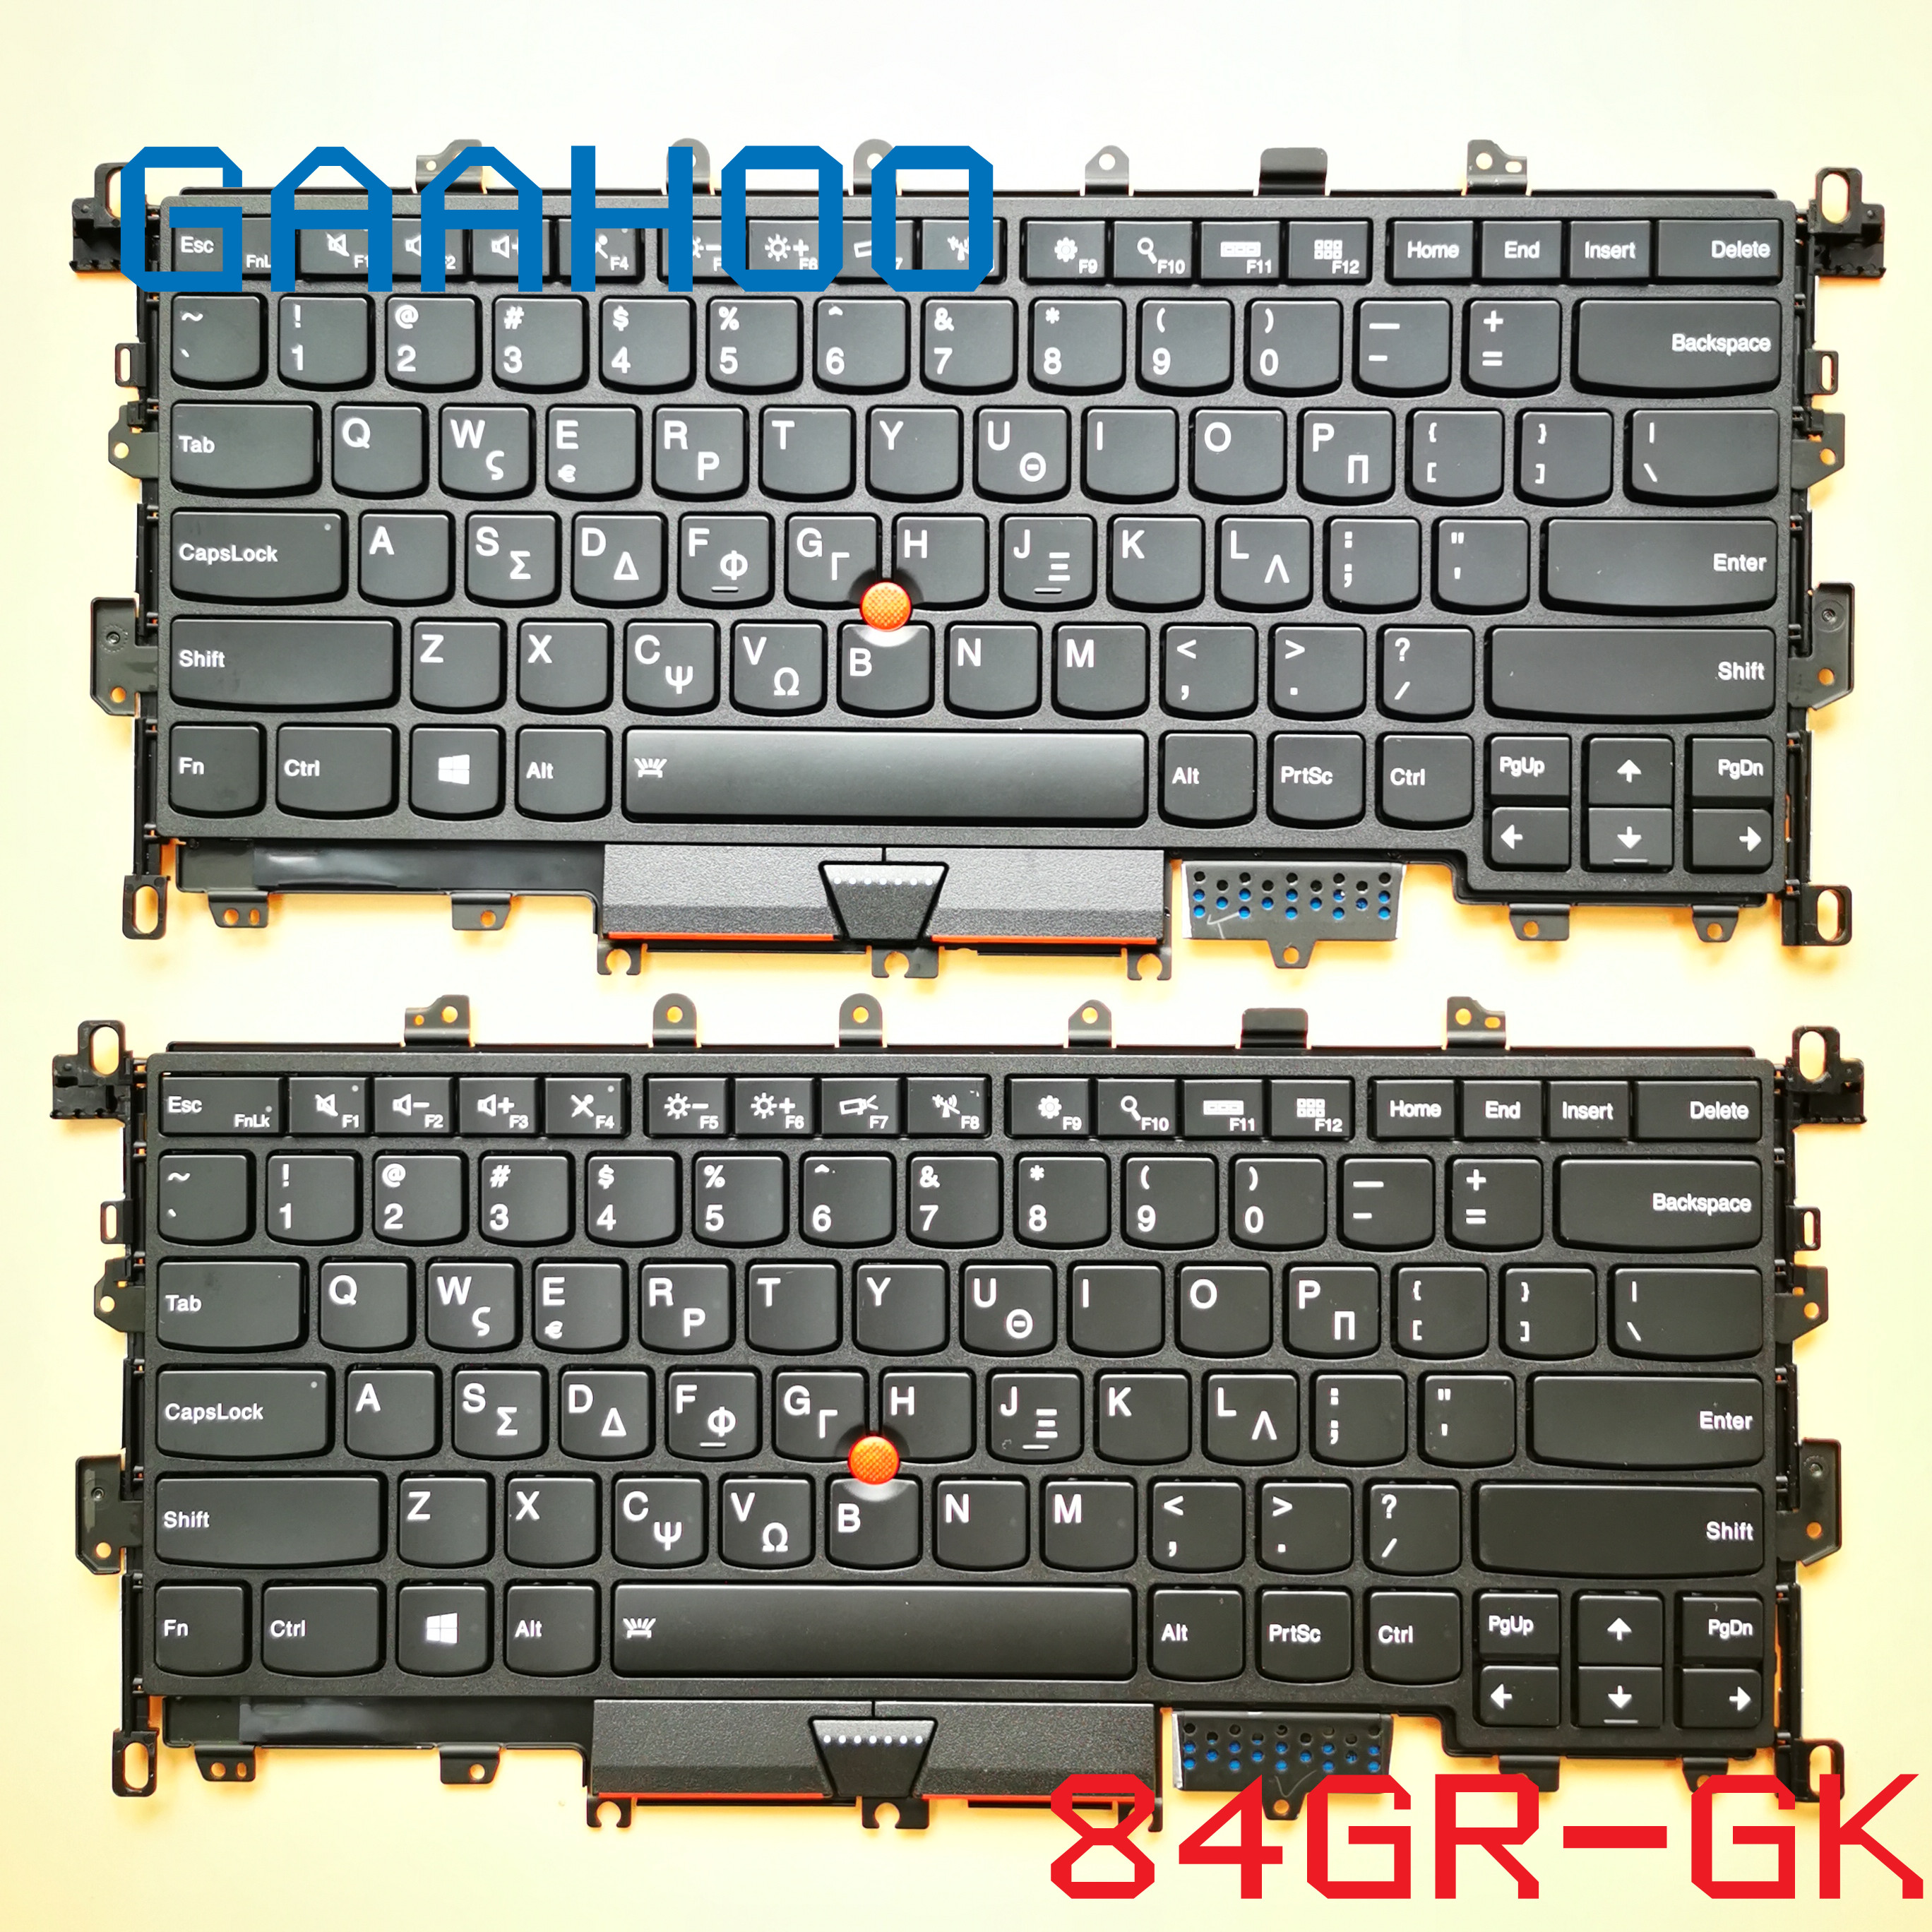 Laptop Keyboard for ACER Timeline 1810T 1810TG 1820PT 1820T 1825T 1830T 1830TZ 1830TG Spain SP Black